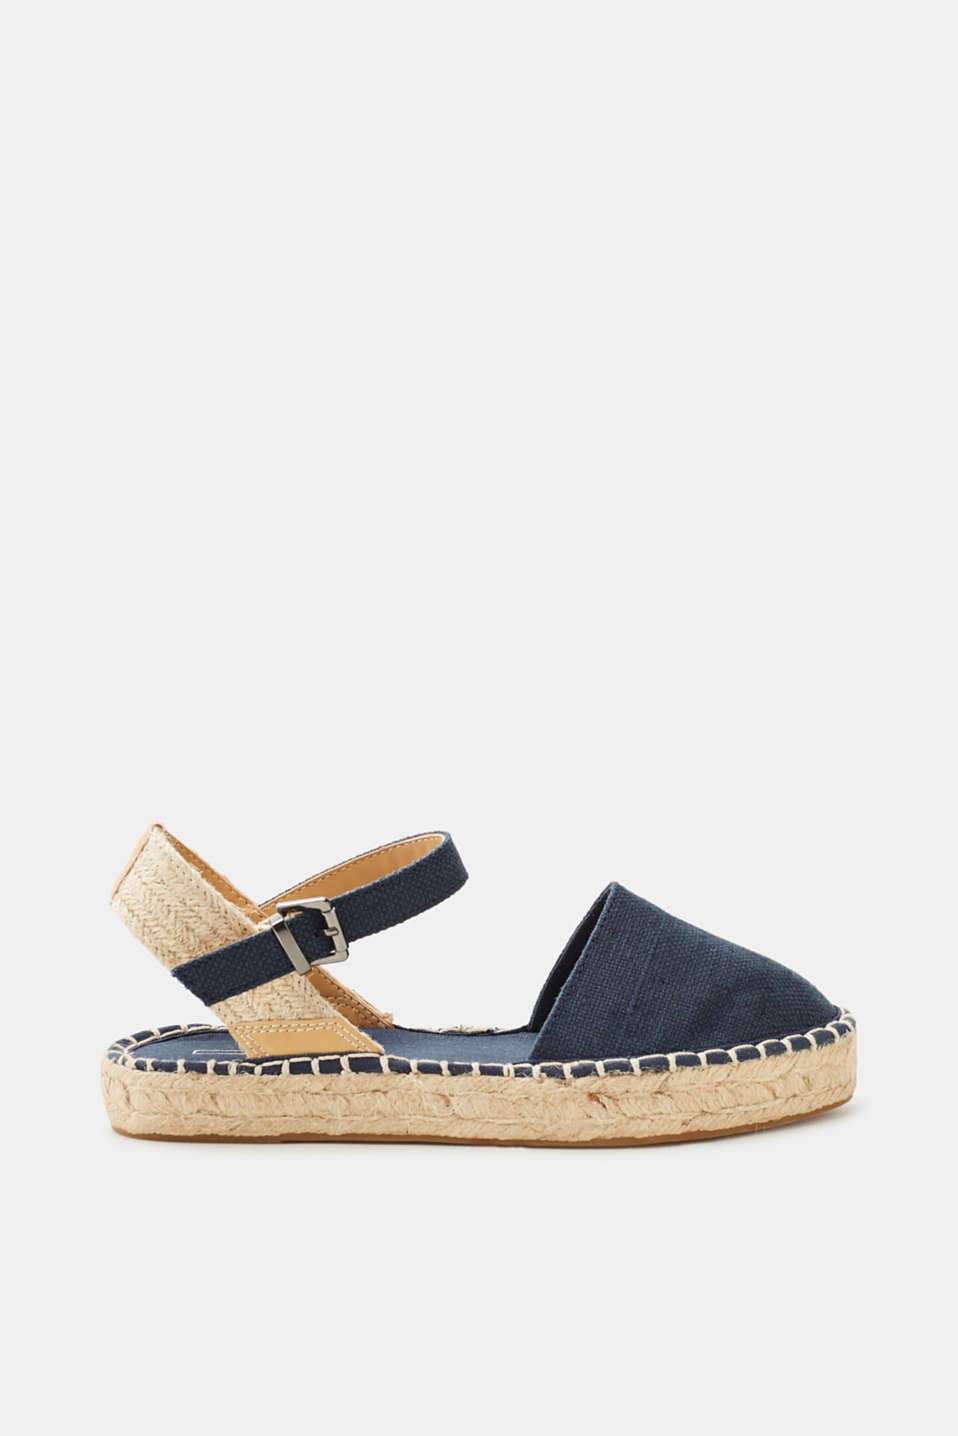 Bring on summer, sunshine and sand: plain, sling-back espadrilles with all-round stitching!